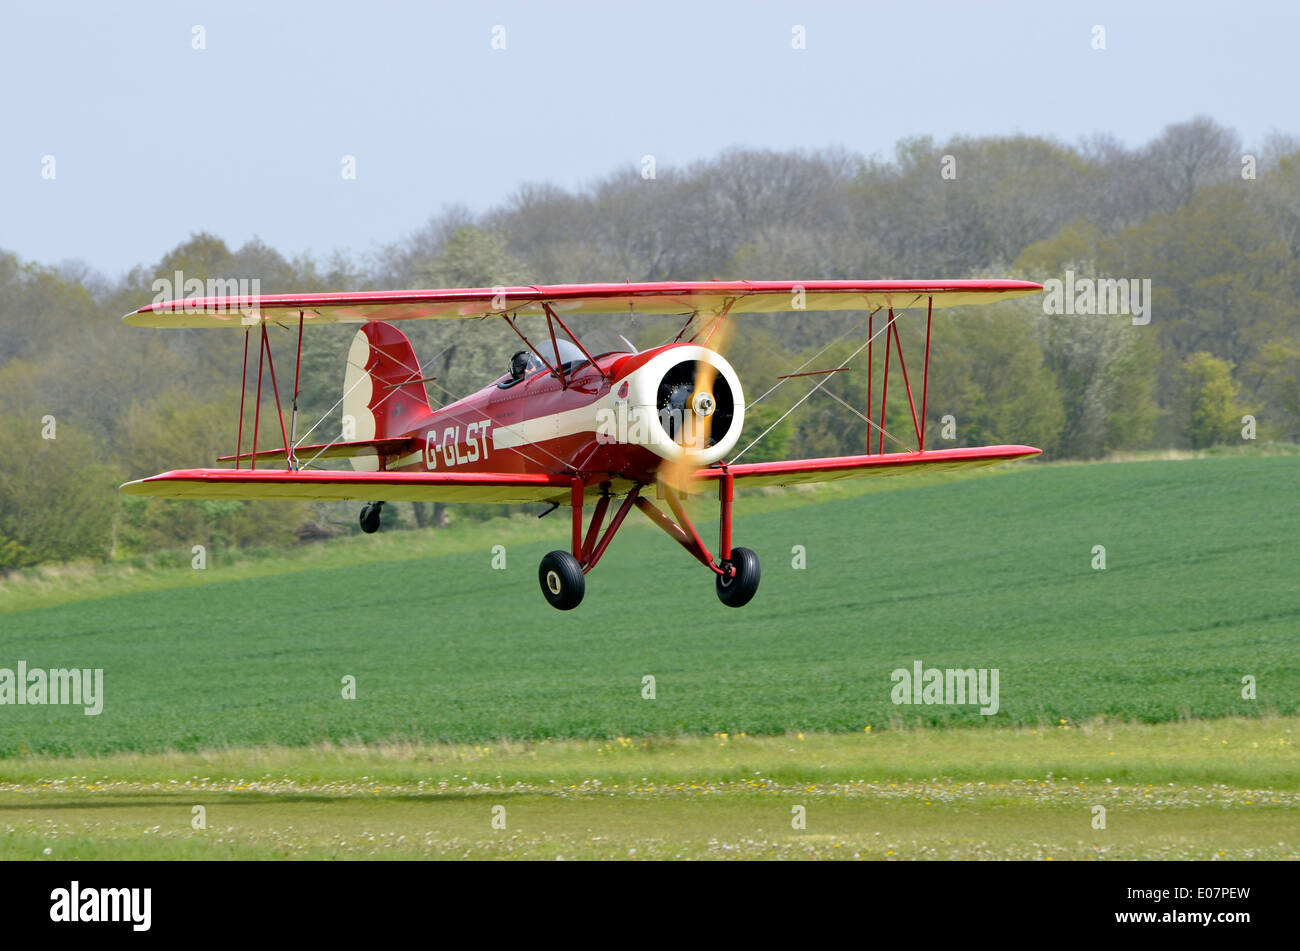 Replica Great Lakes Sports Trainer biplane, G-GLST taking off from the grass airstrip at Popham Airfield, Hampshire - Stock Image